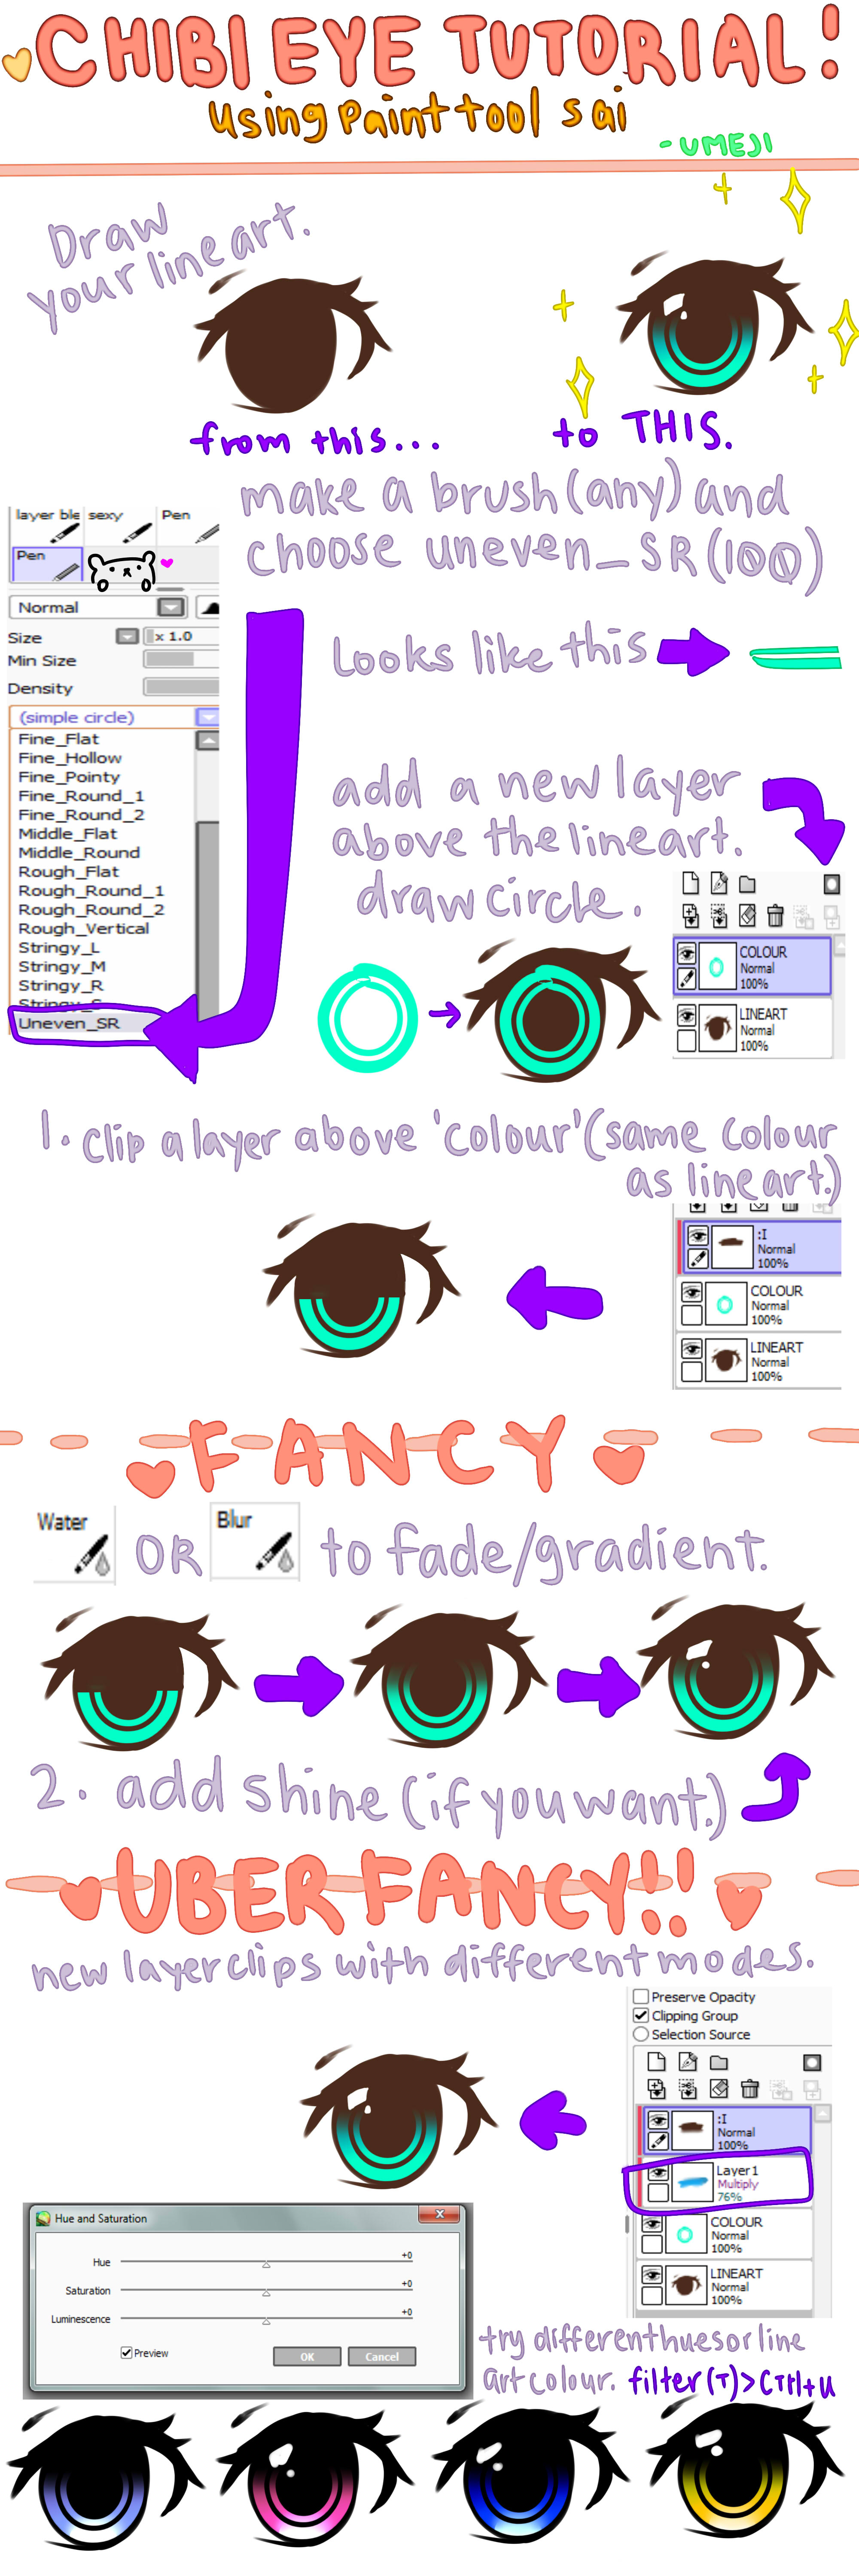 Chibi Eye Tutorial by UMEJI